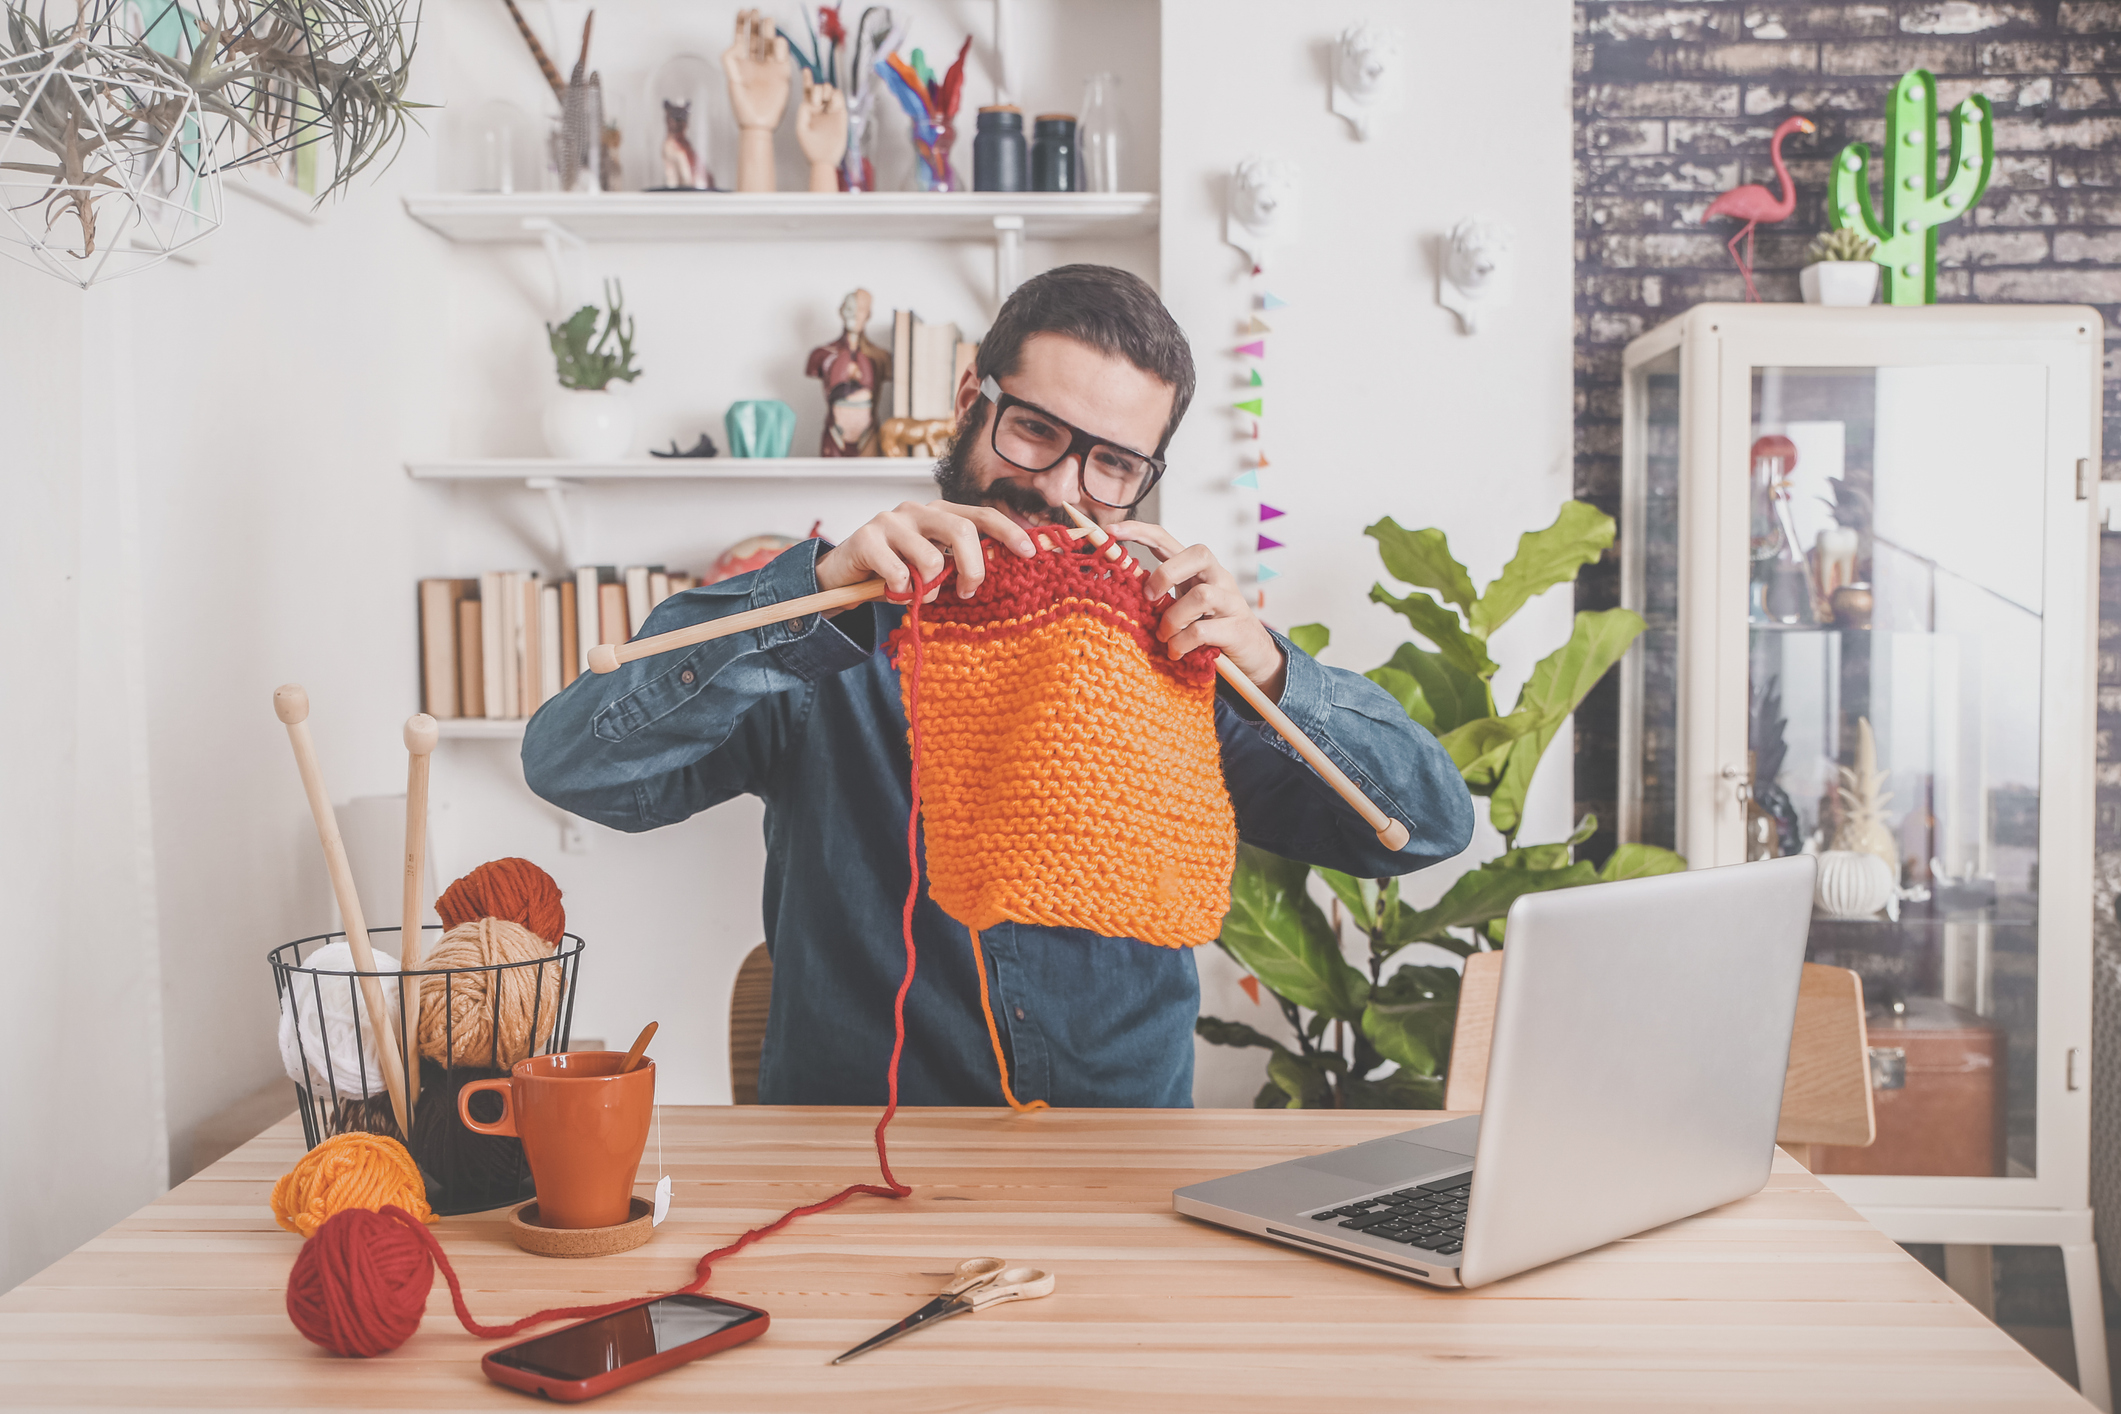 Man learning to knit